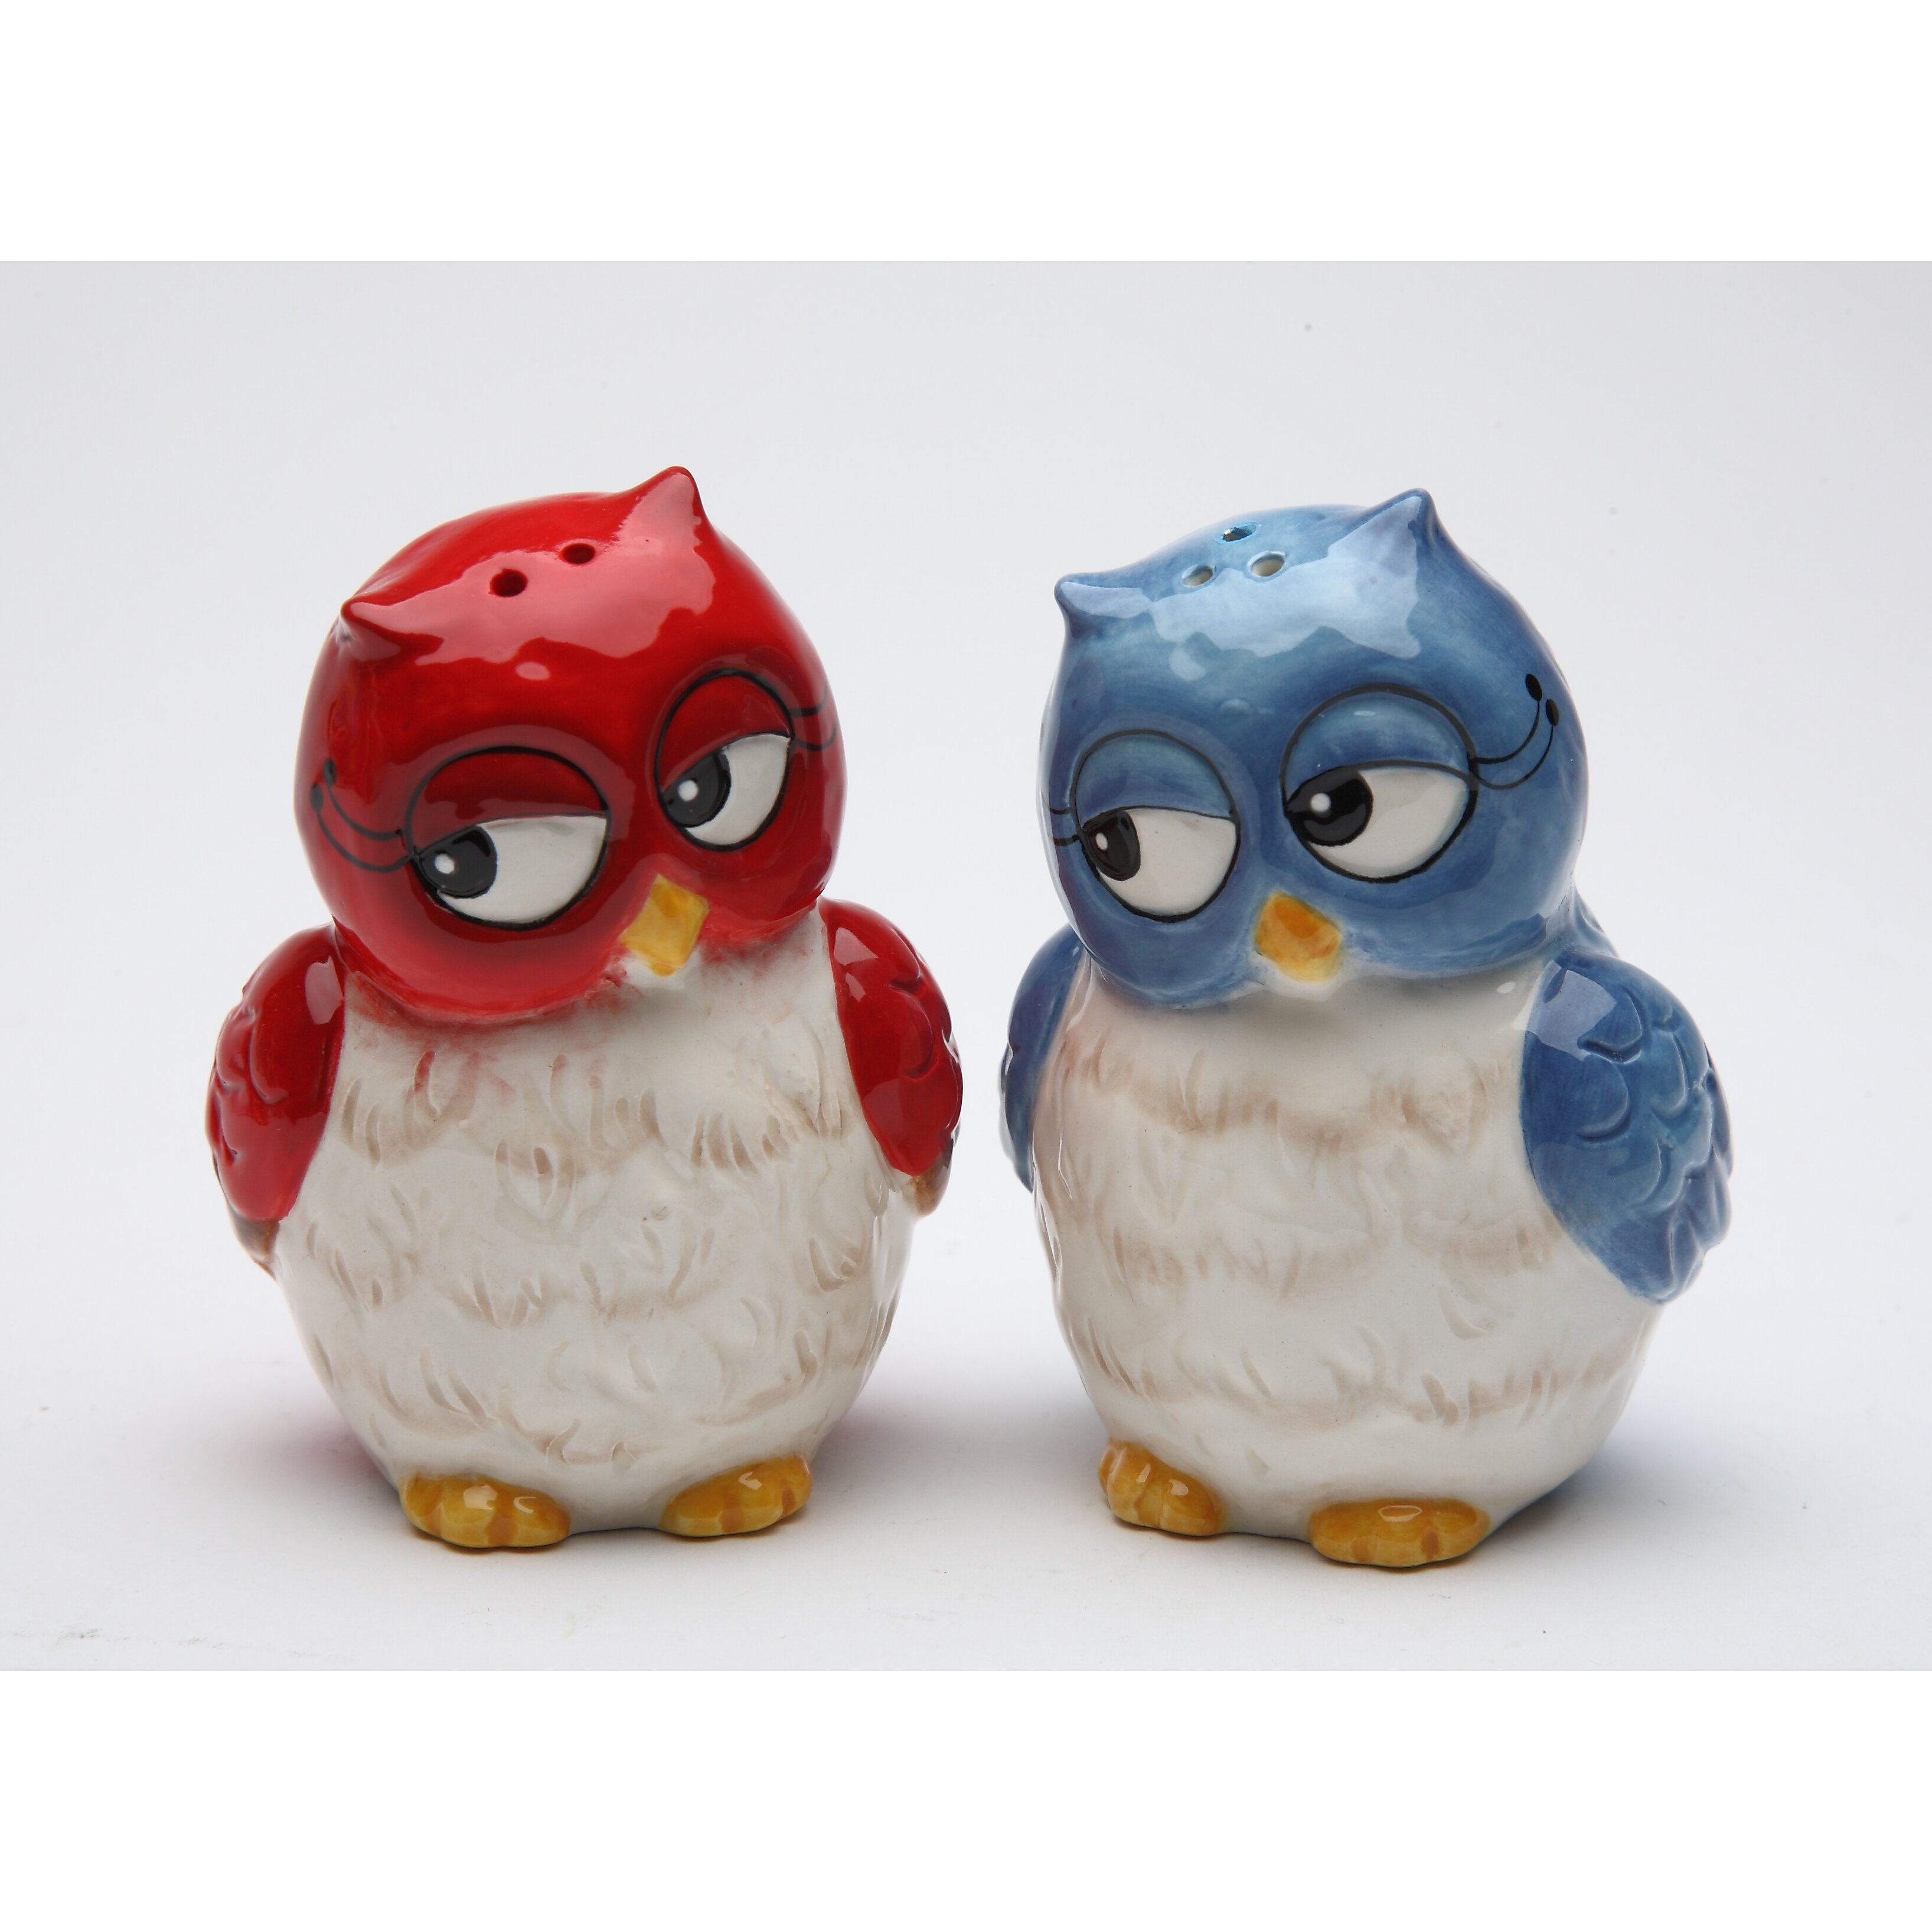 Cosmosgifts Couple Owls Salt And Pepper Set Reviews